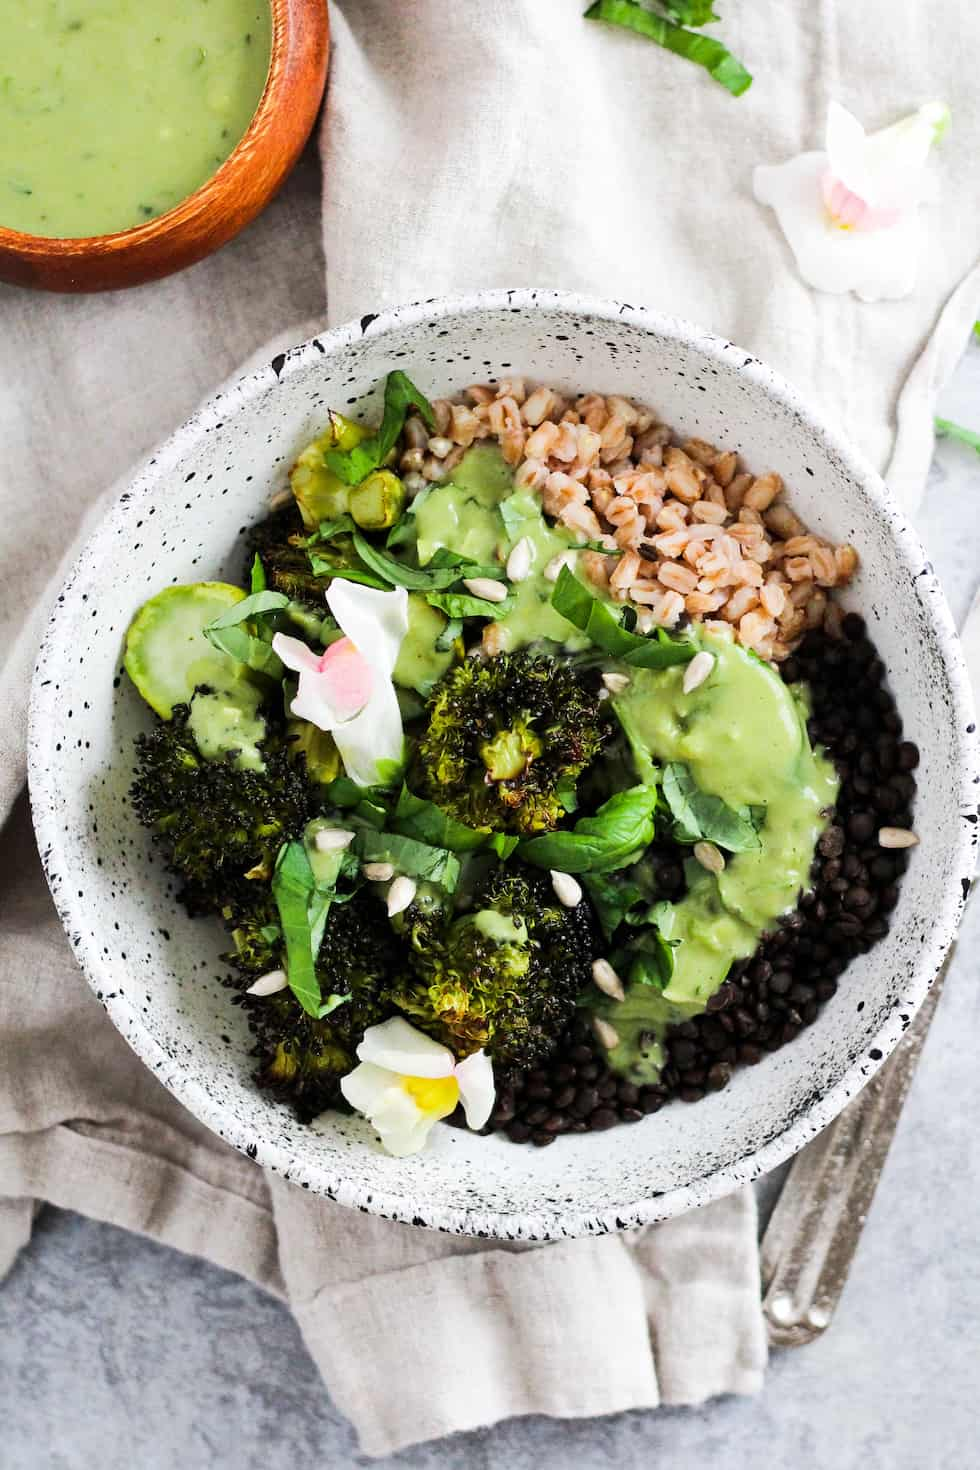 Lentil grain bowls with edible flowers in white ceramic bowl with small wood bowl of green matcha dressing.